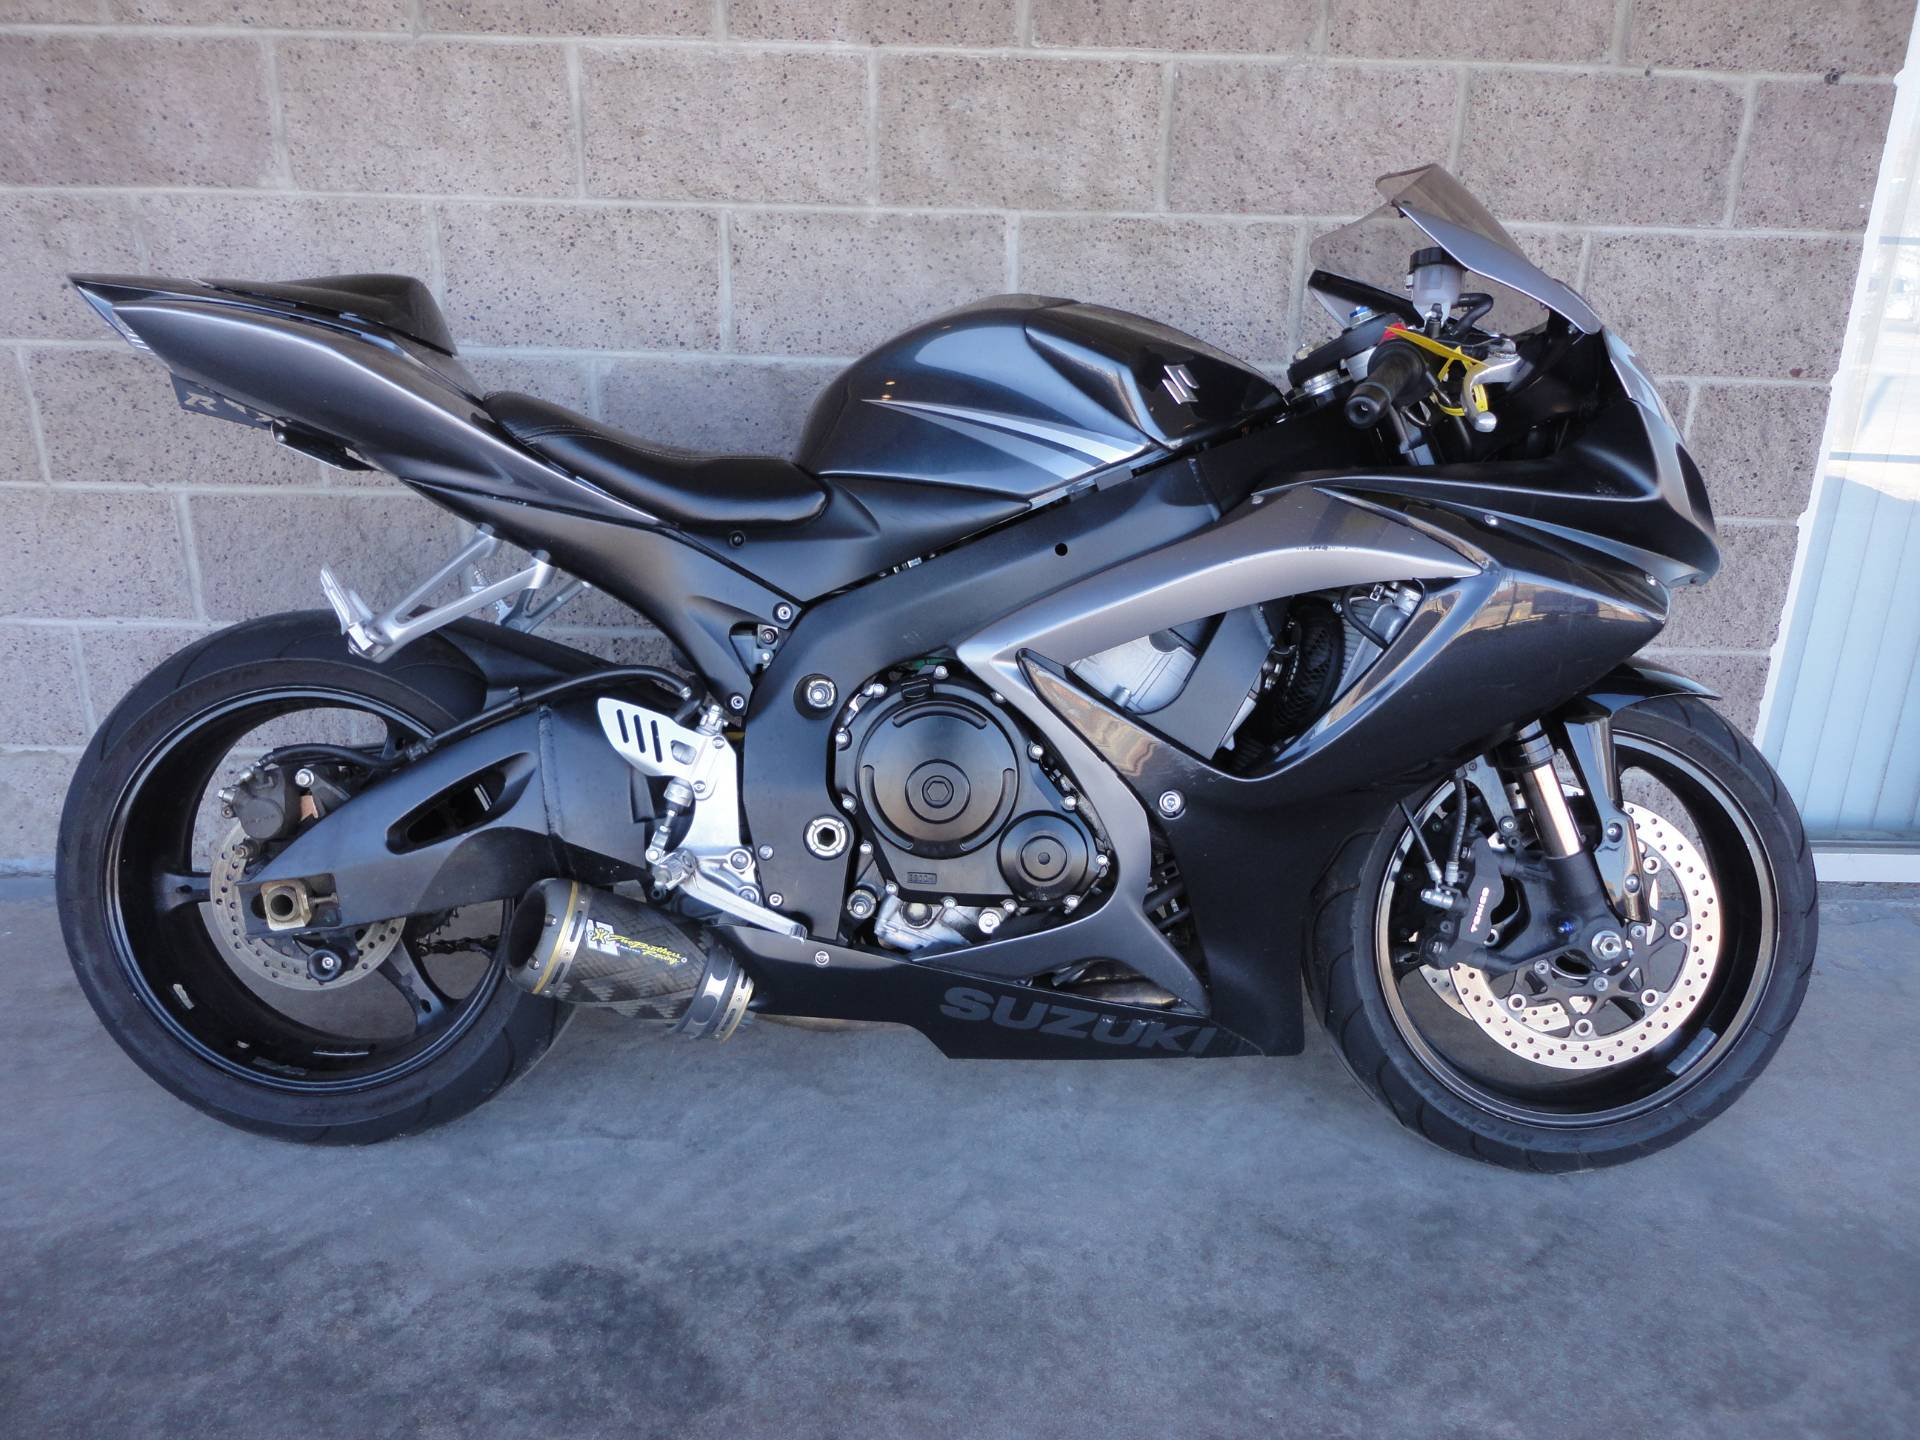 2007 Suzuki GSX-R750™ in Denver, Colorado